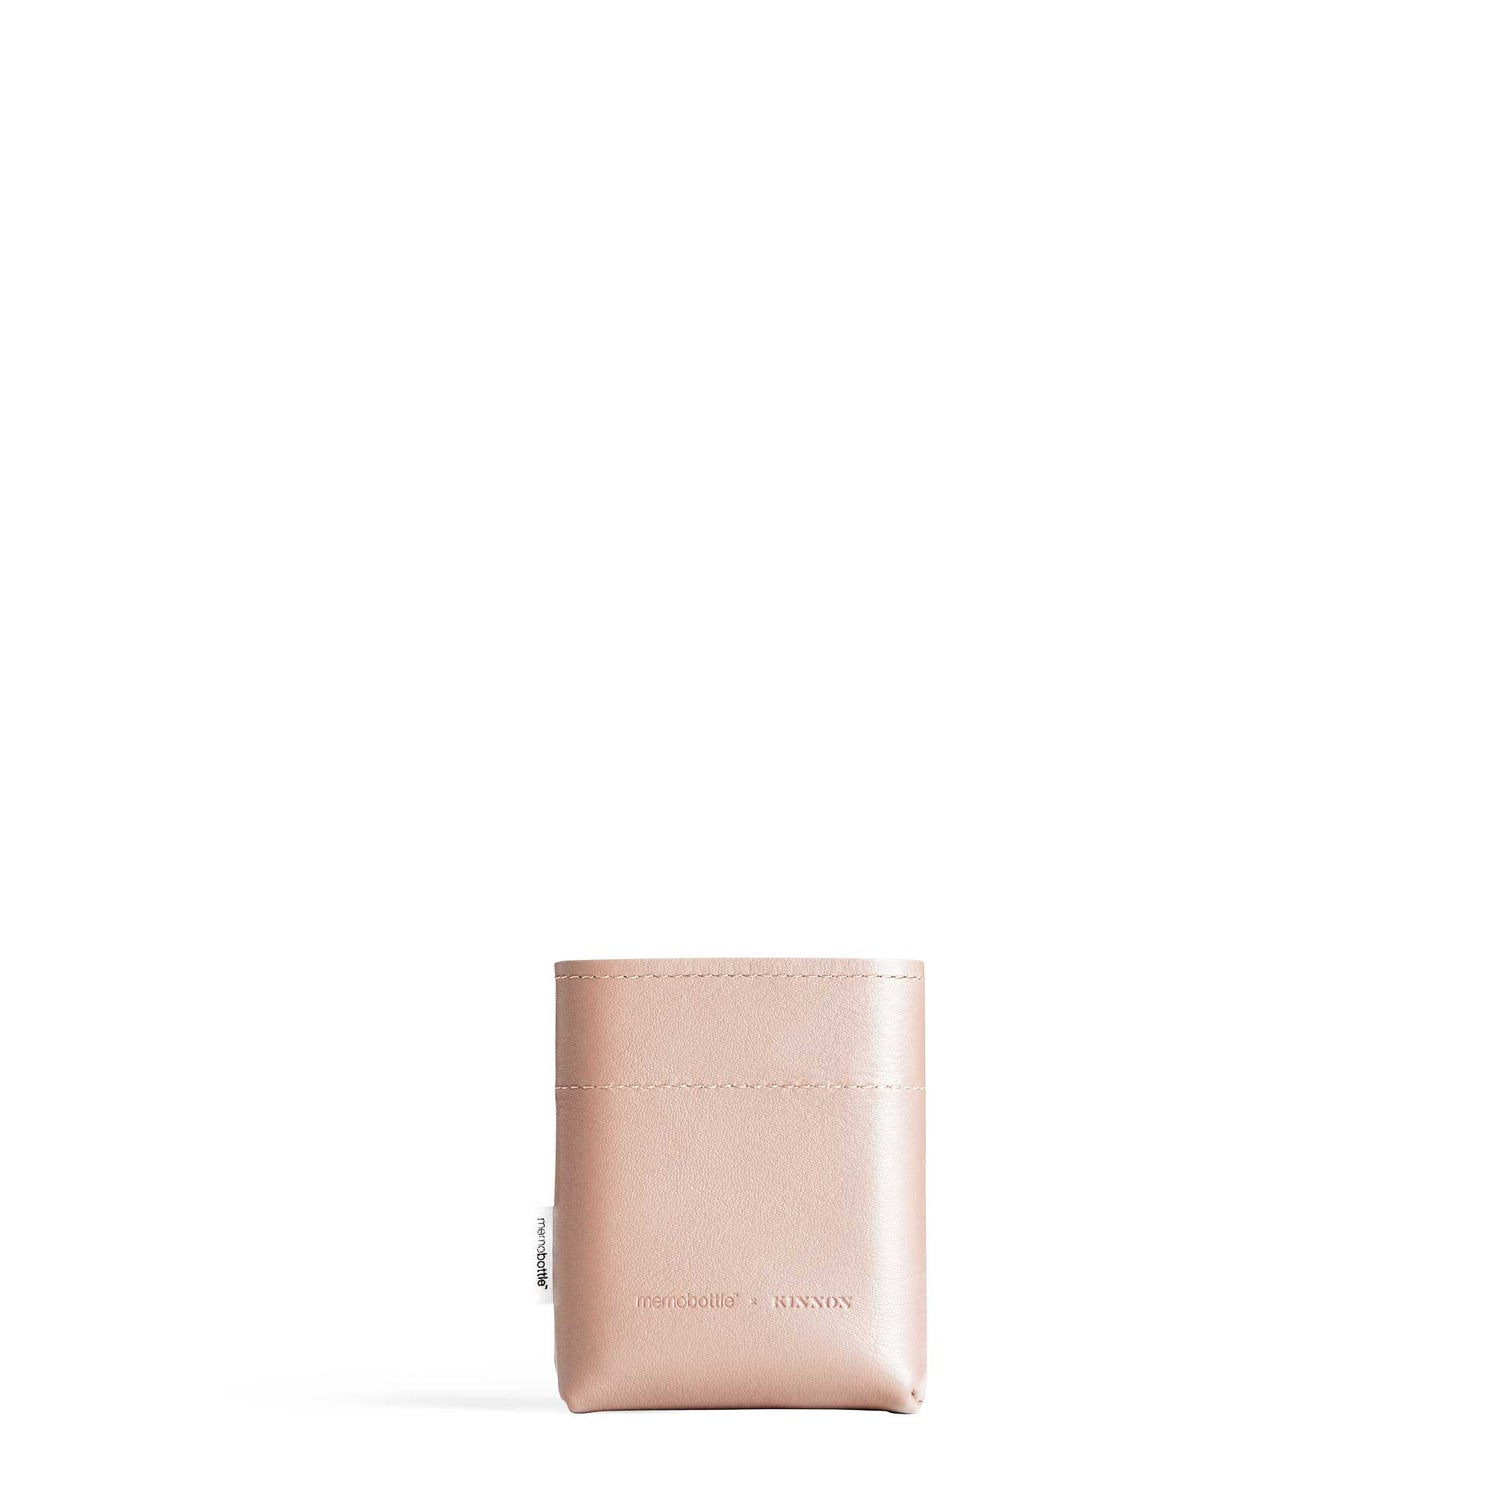 A7 Leather Sleeve - Nude